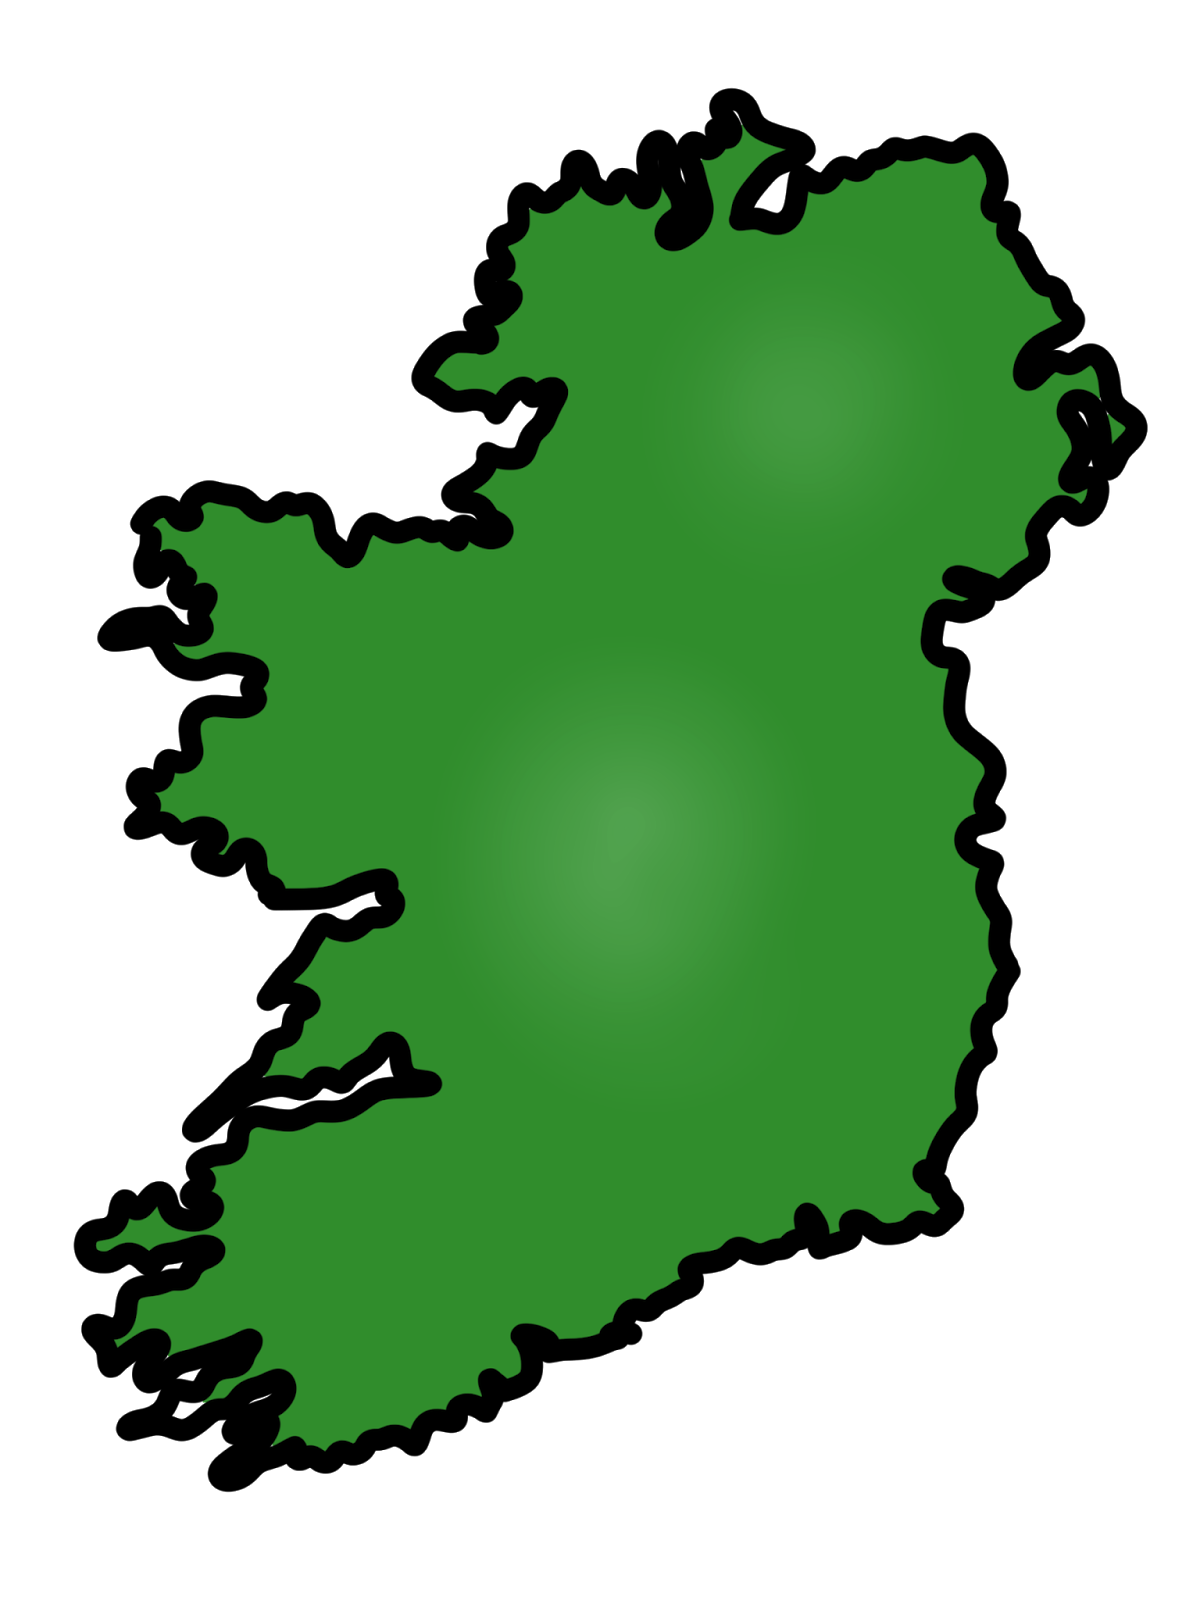 Simple Irish Map Free Cliparts That You Can Download To You Computer